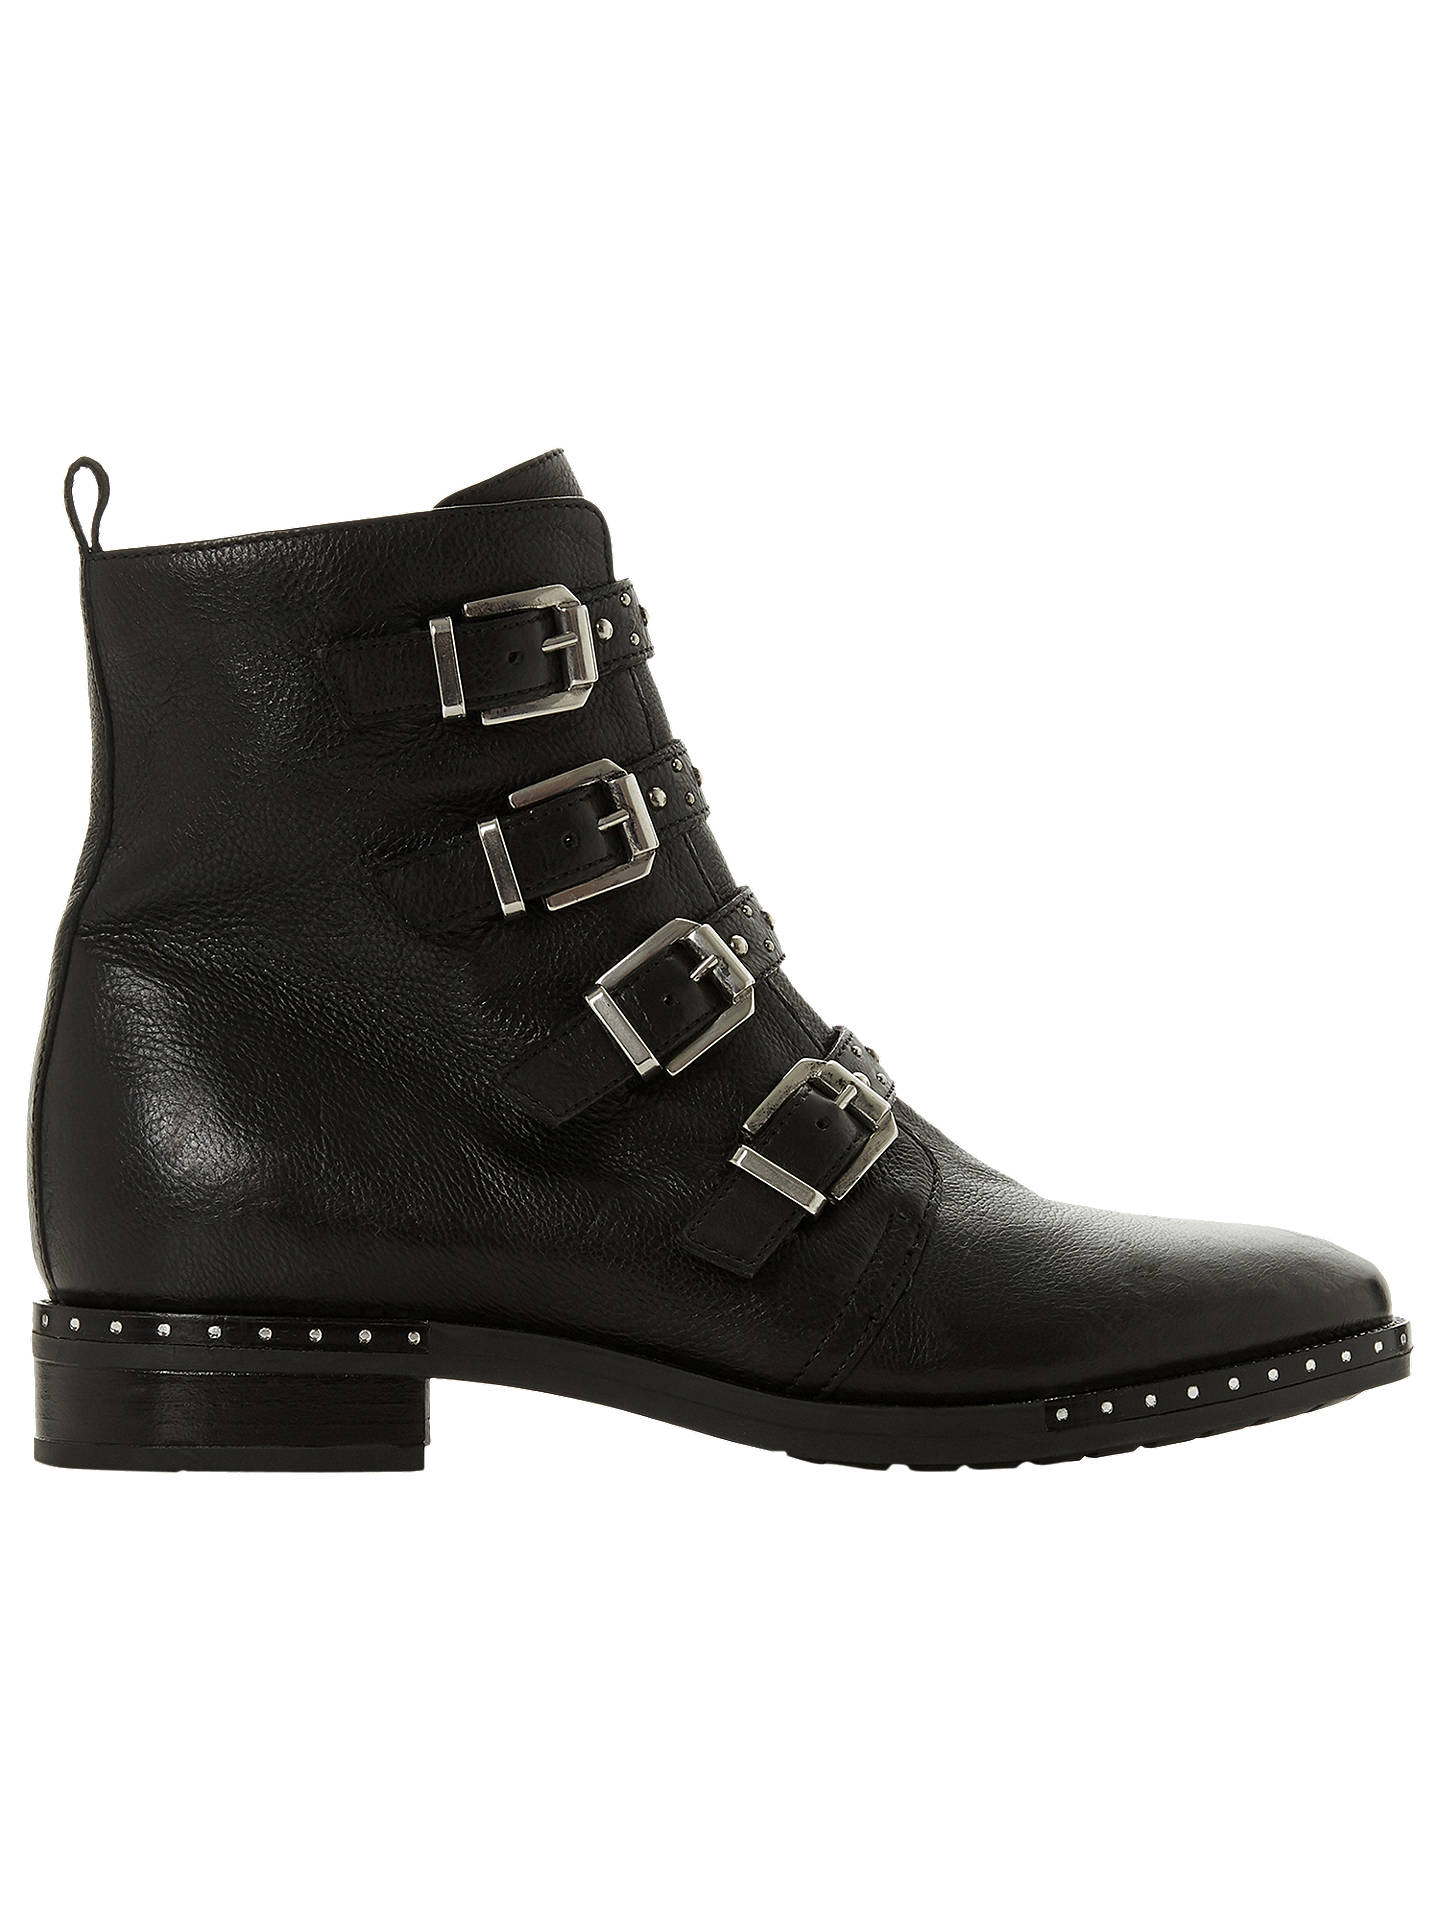 b8983035f9f Buy Dune Pixxel Studded Ankle Boots